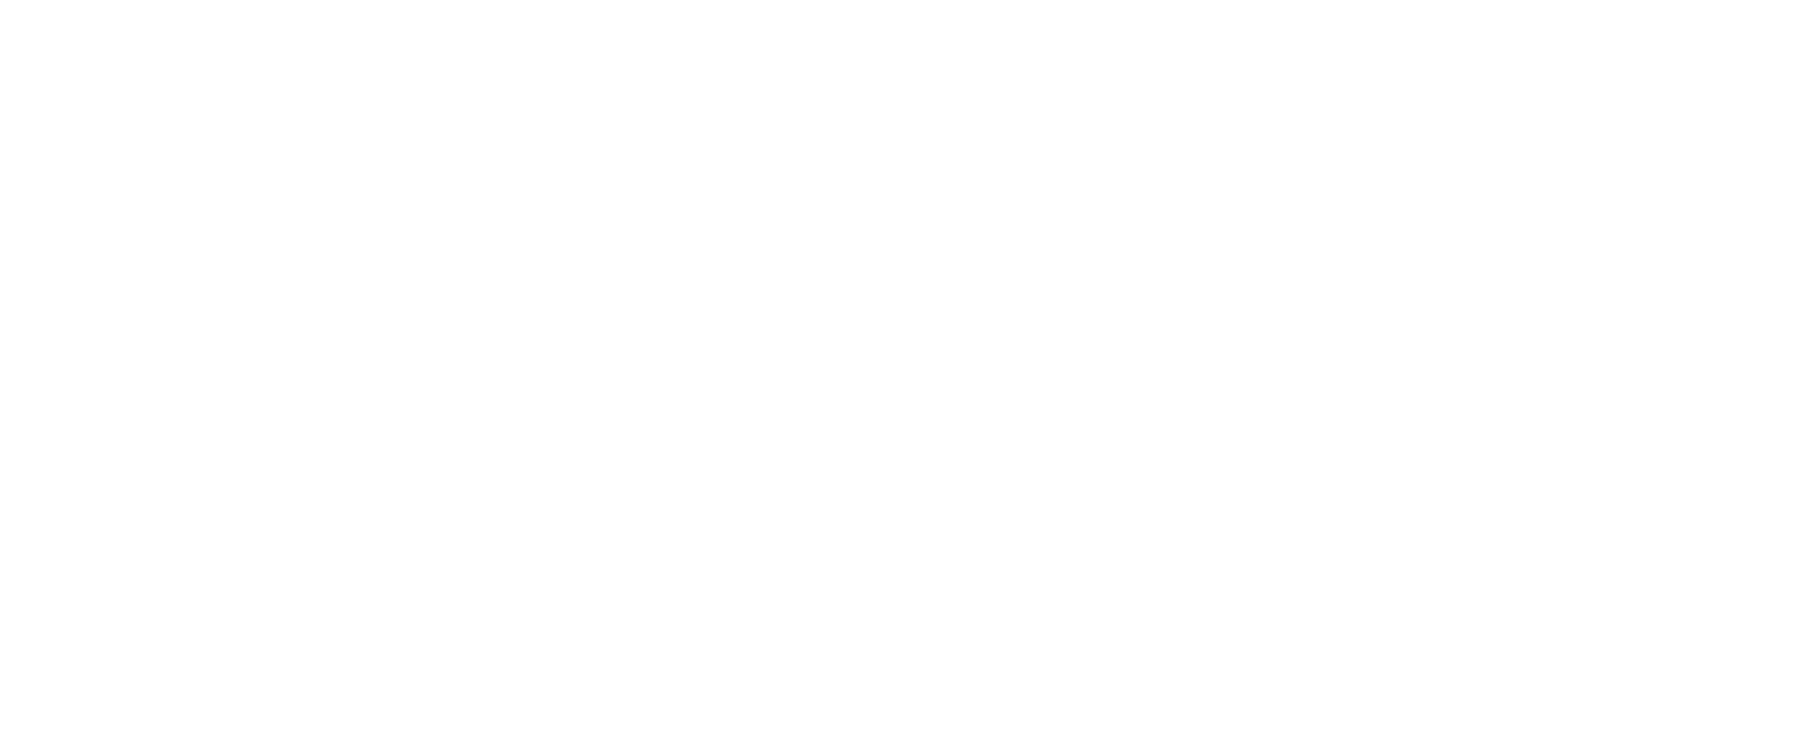 Illinois Watch Company